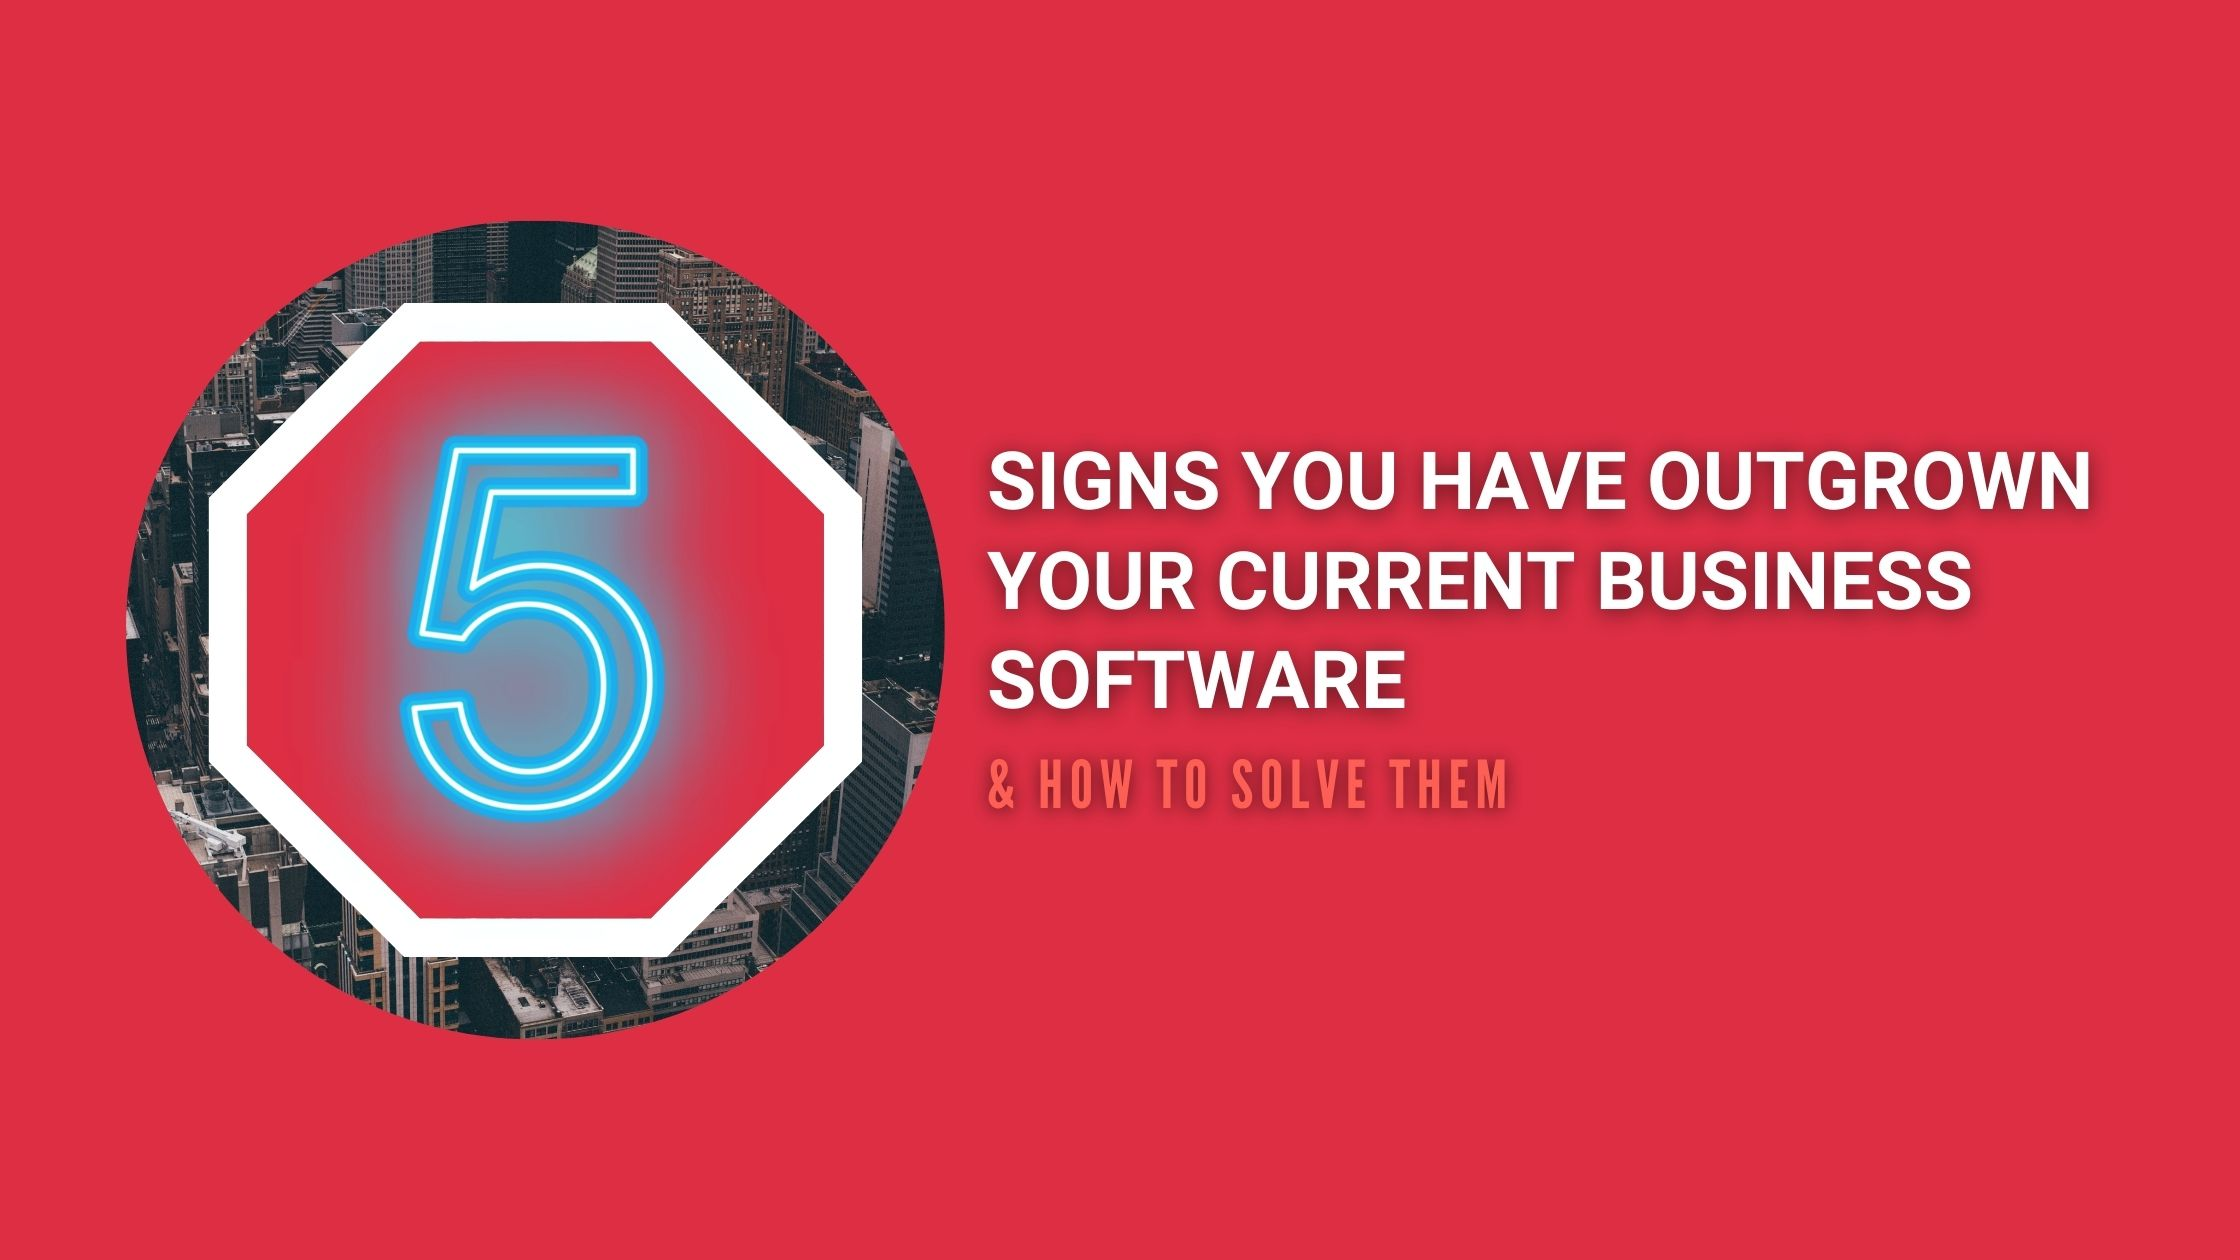 5 Signs you have outgrown your current business software and how to solve them